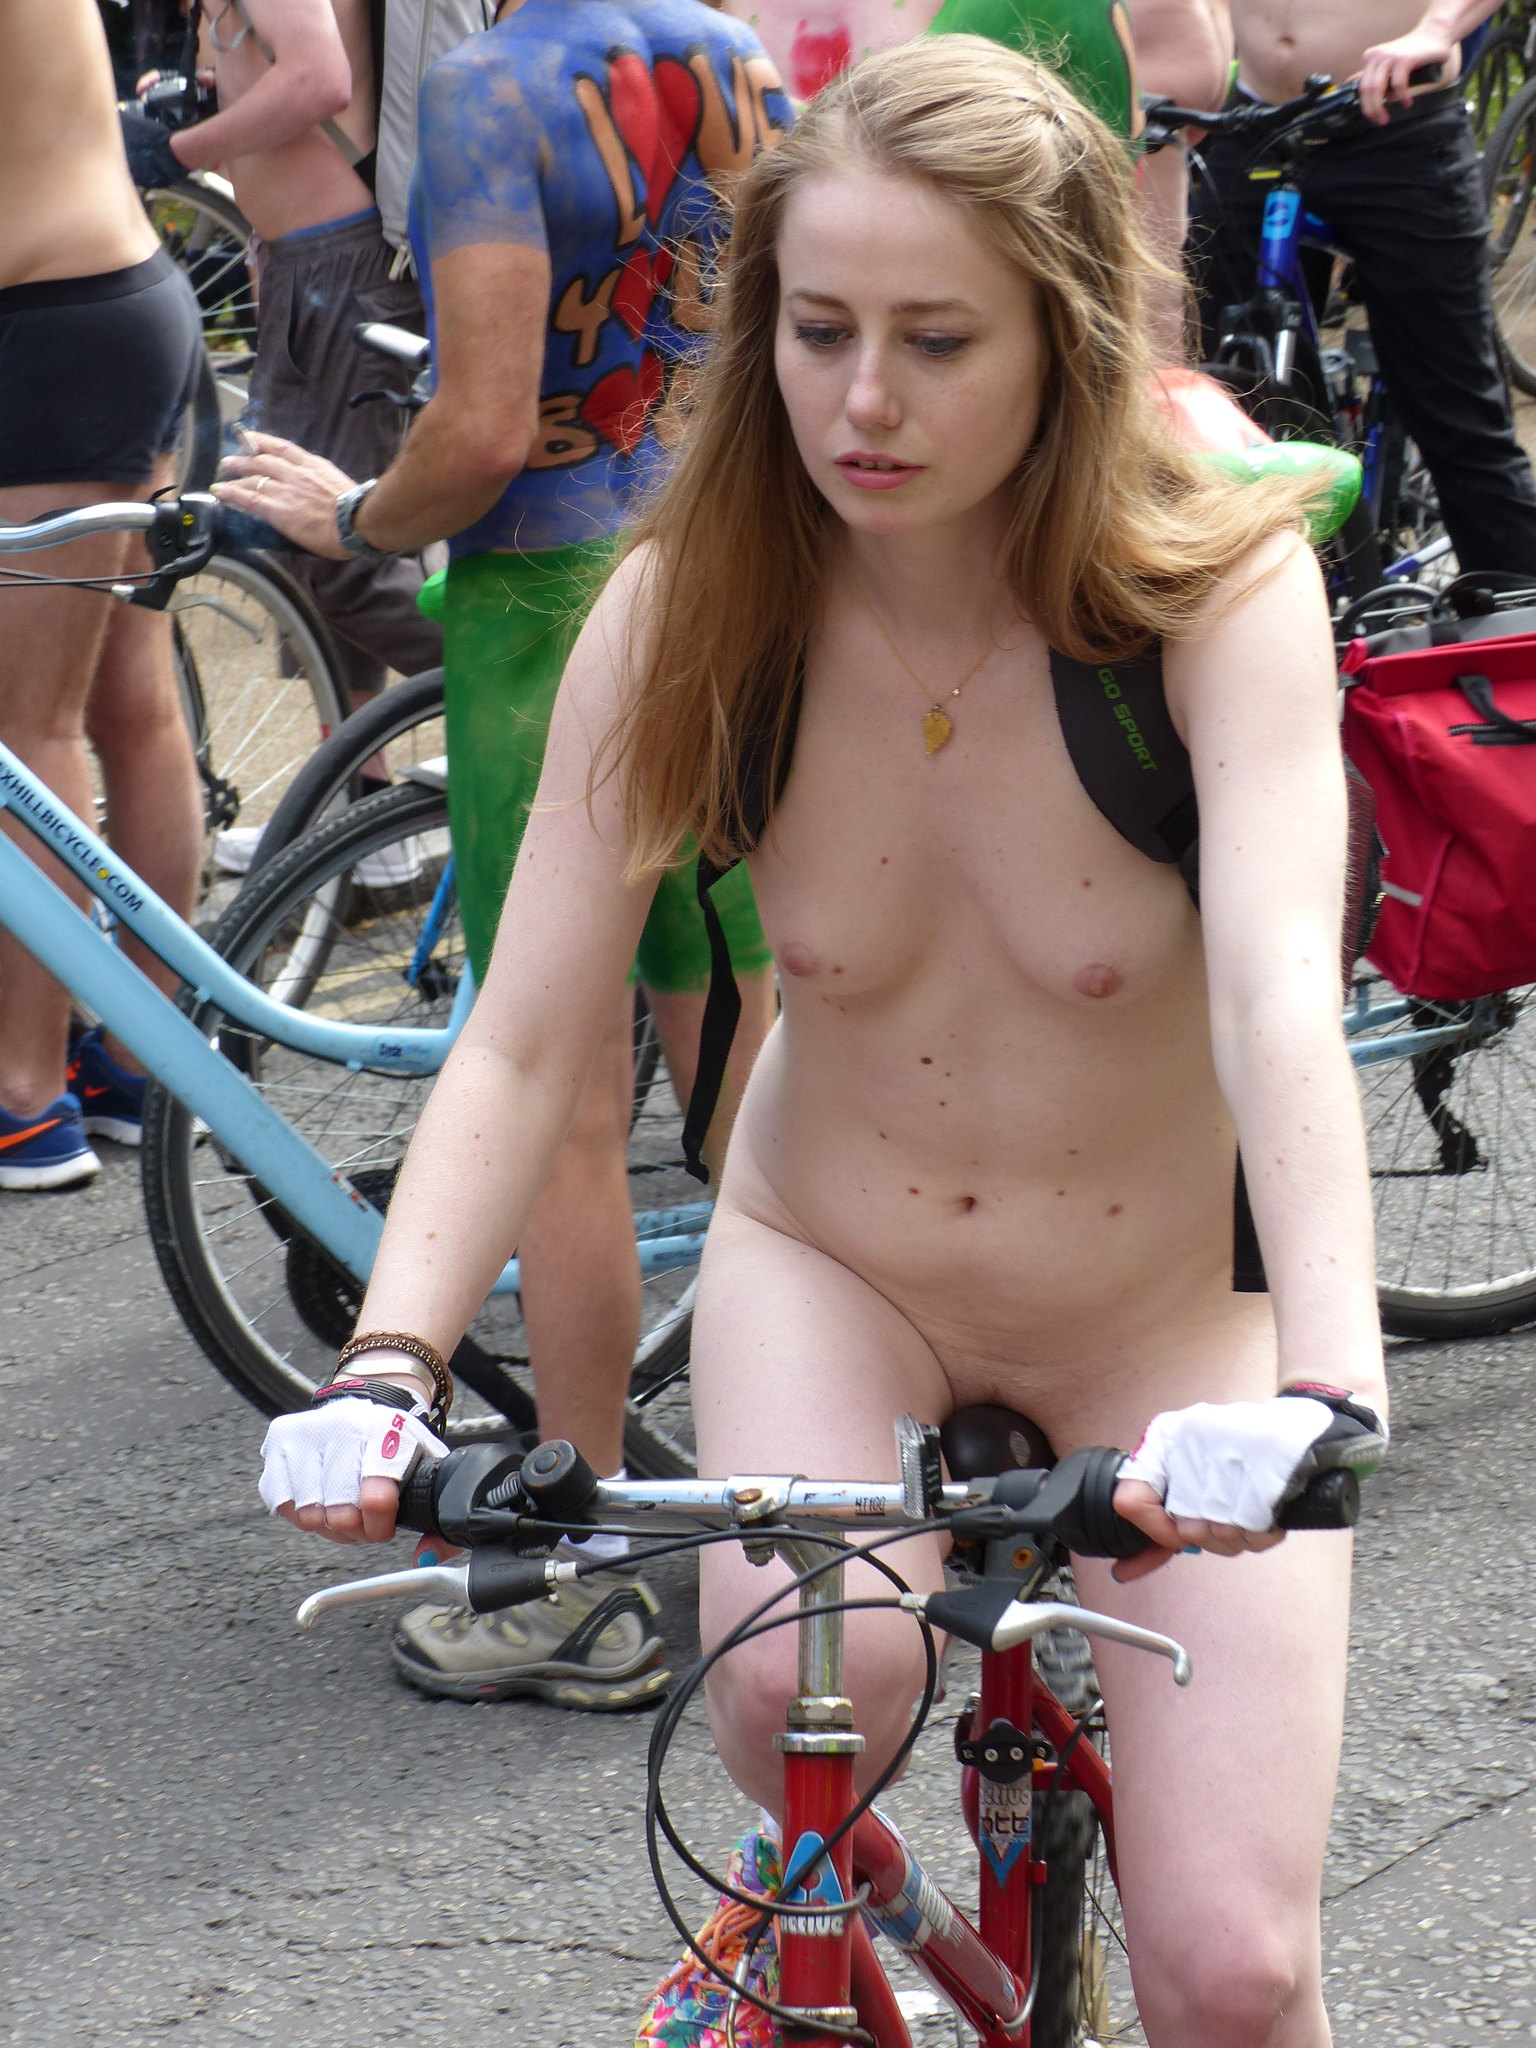 Girls ride naked bike